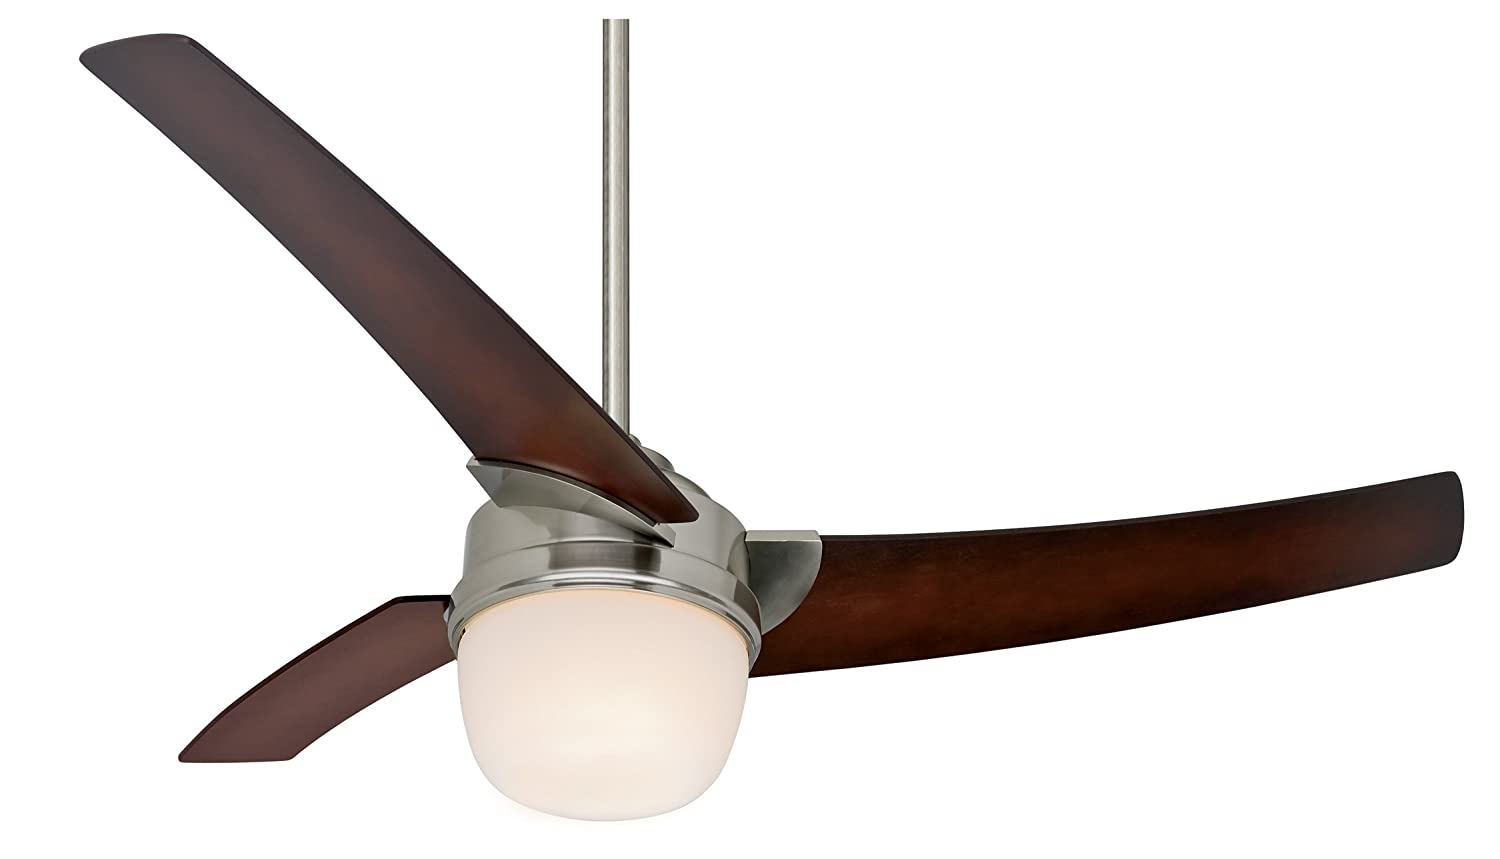 Hunter 21806 Eurus 54-Inch Single Light 3-Blade